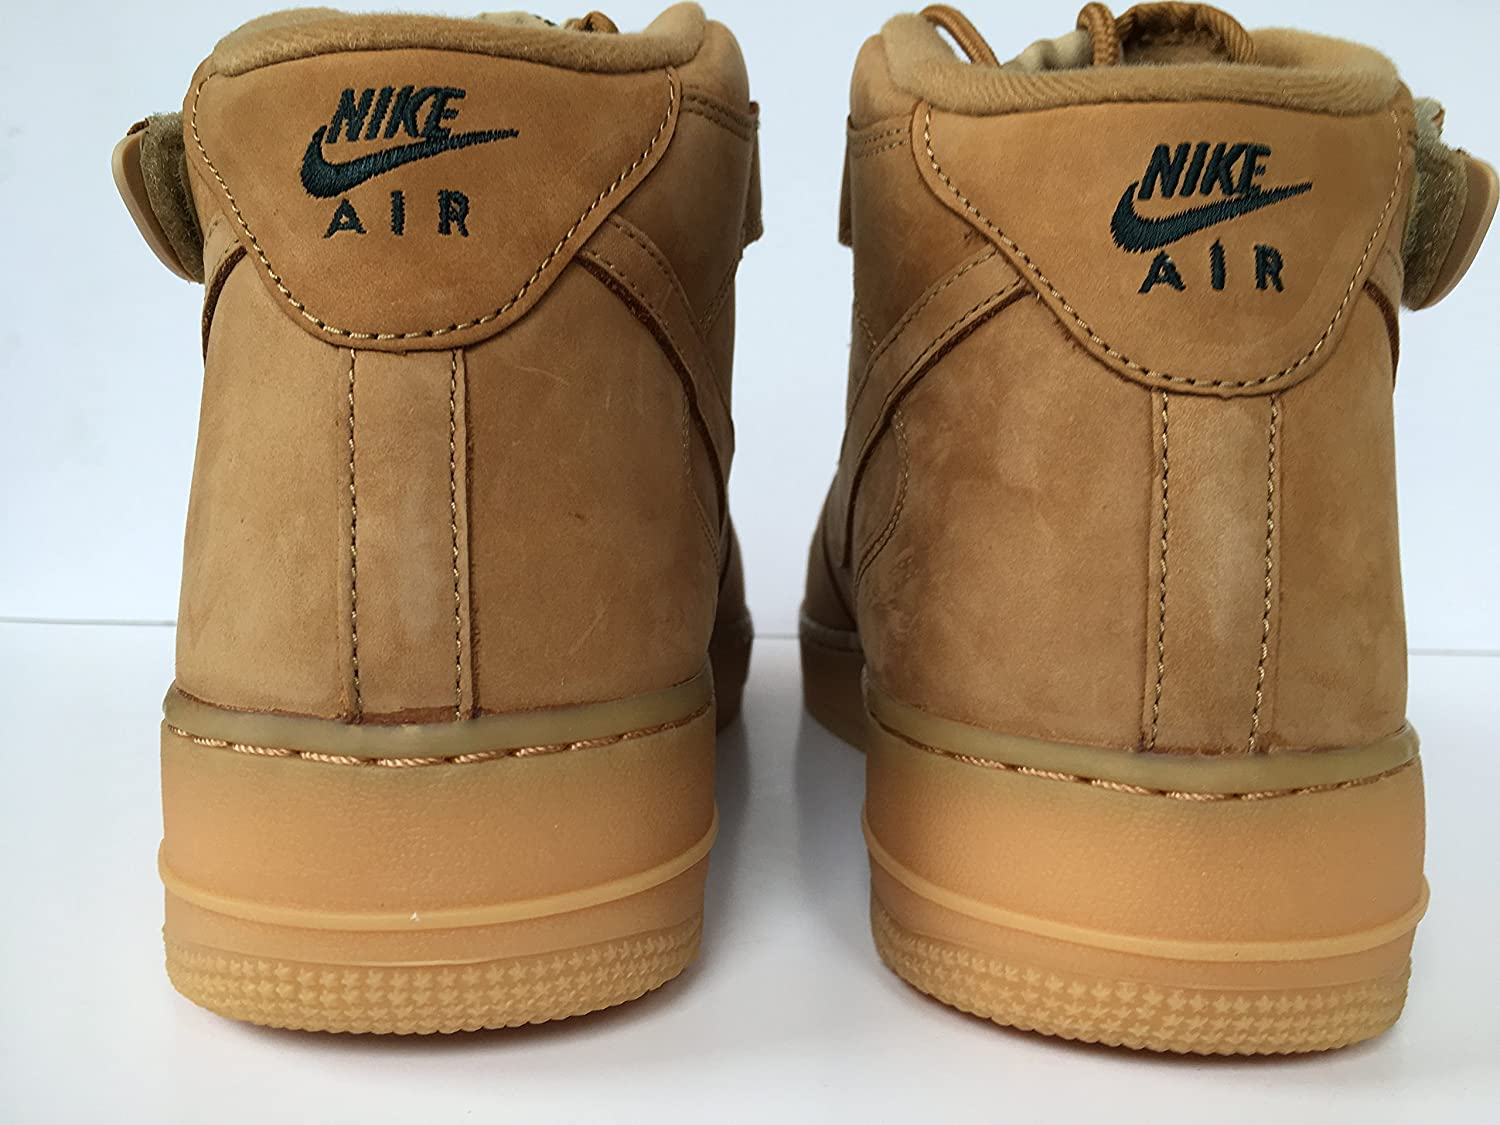 Nike Air Force 1 Mid 07 Prm Qs Lino fqKB3KUQAc